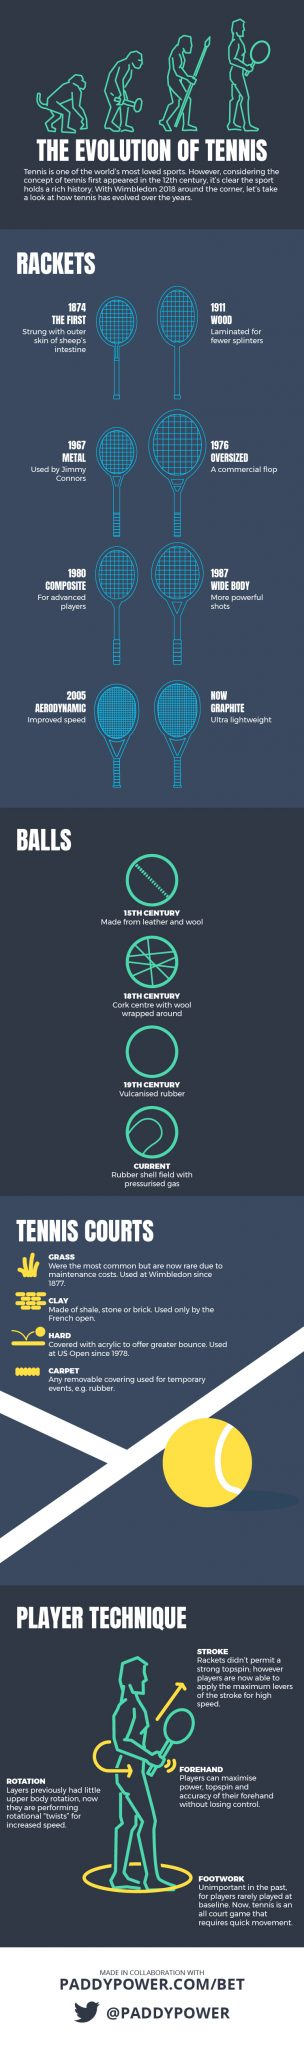 The Evolution of Tennis infographic